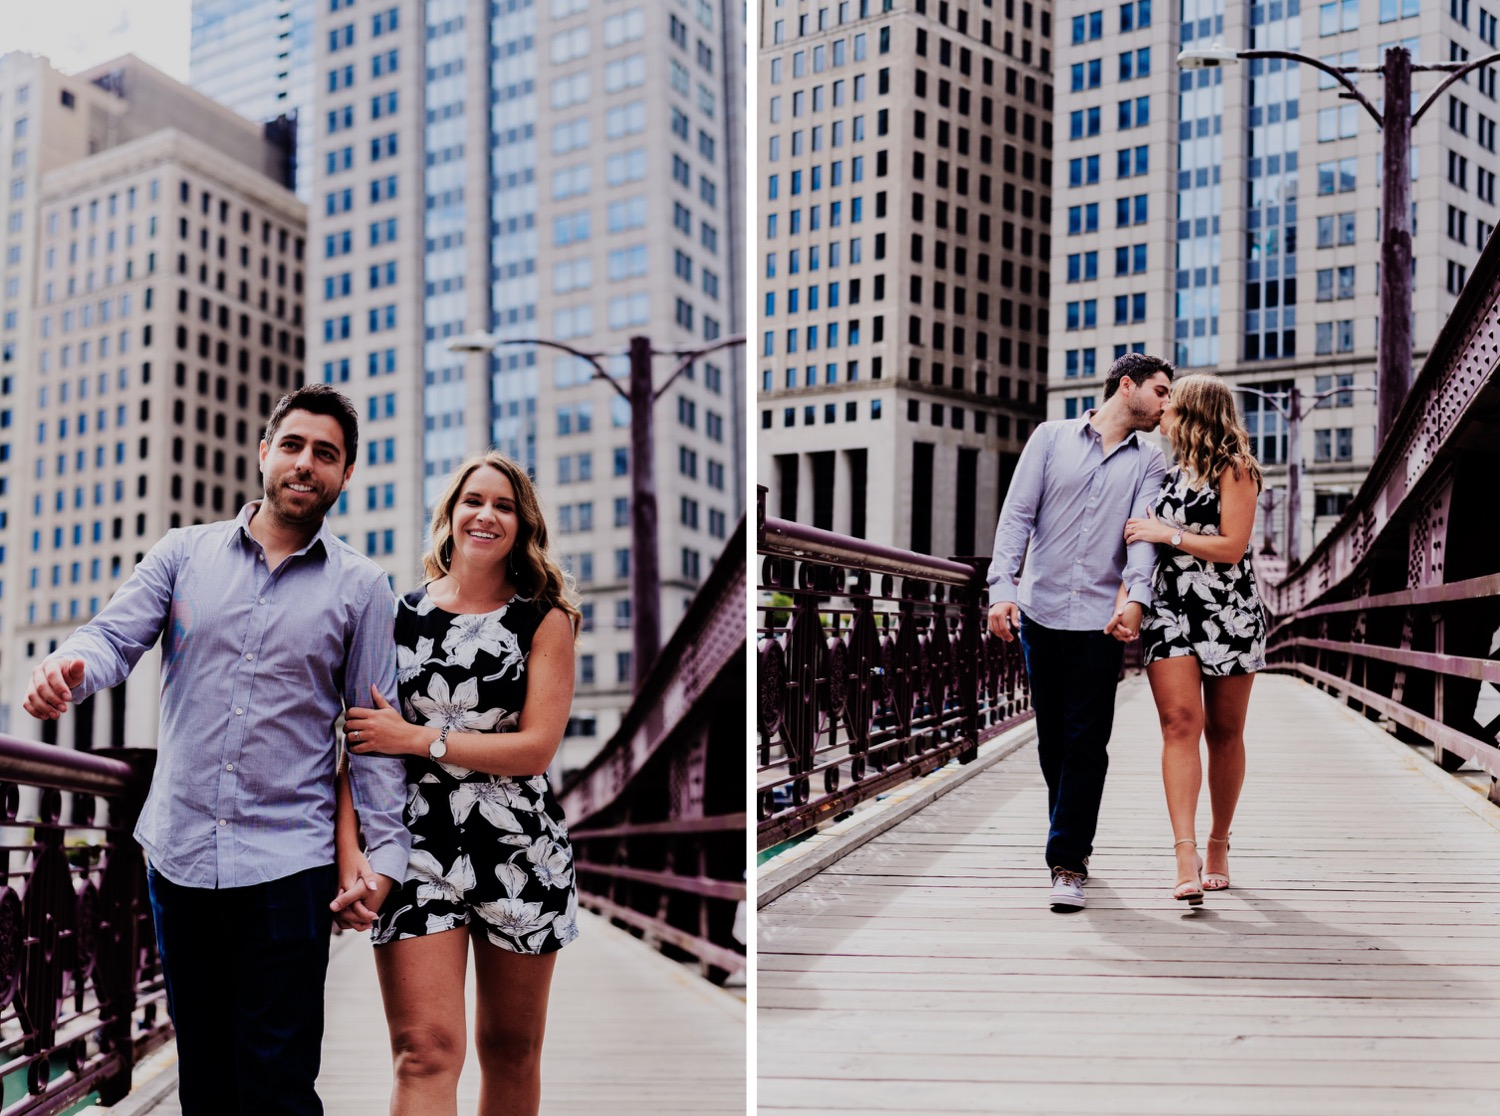 12_Margaret-Andrew-Chicago-EngagementSession_0345_Margaret-Andrew-Chicago-EngagementSession_0339_engagementsession_engaged_chicagophotographer.jpg